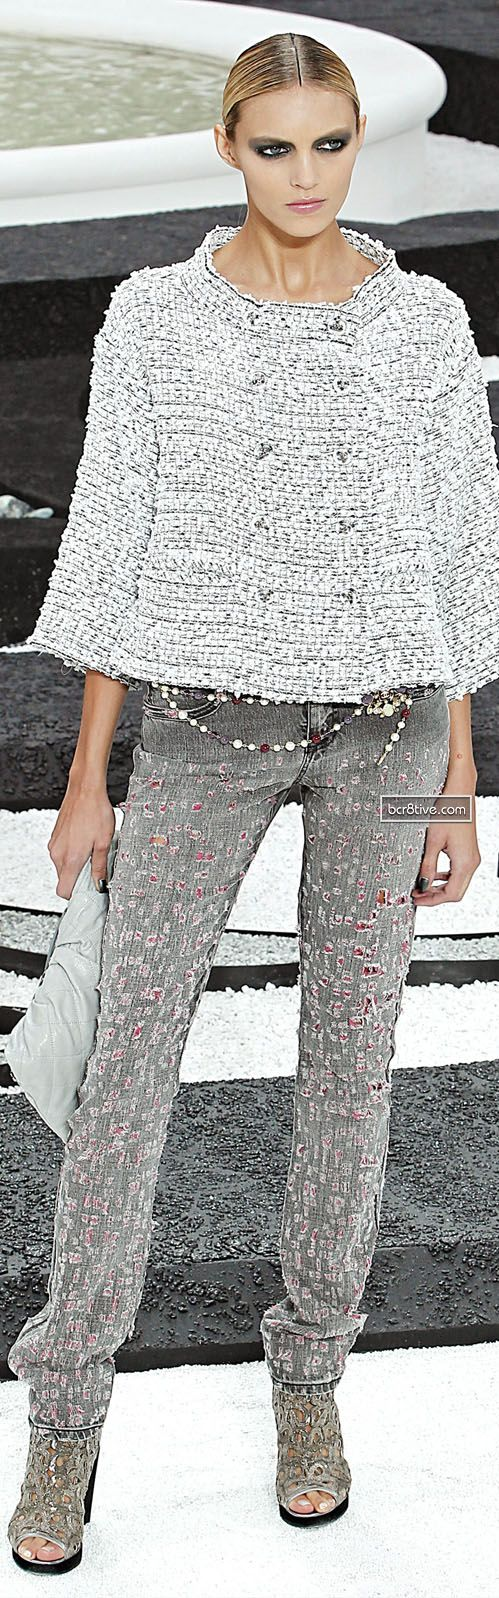 Chanel - love the streamlined look of the matching boot & pant